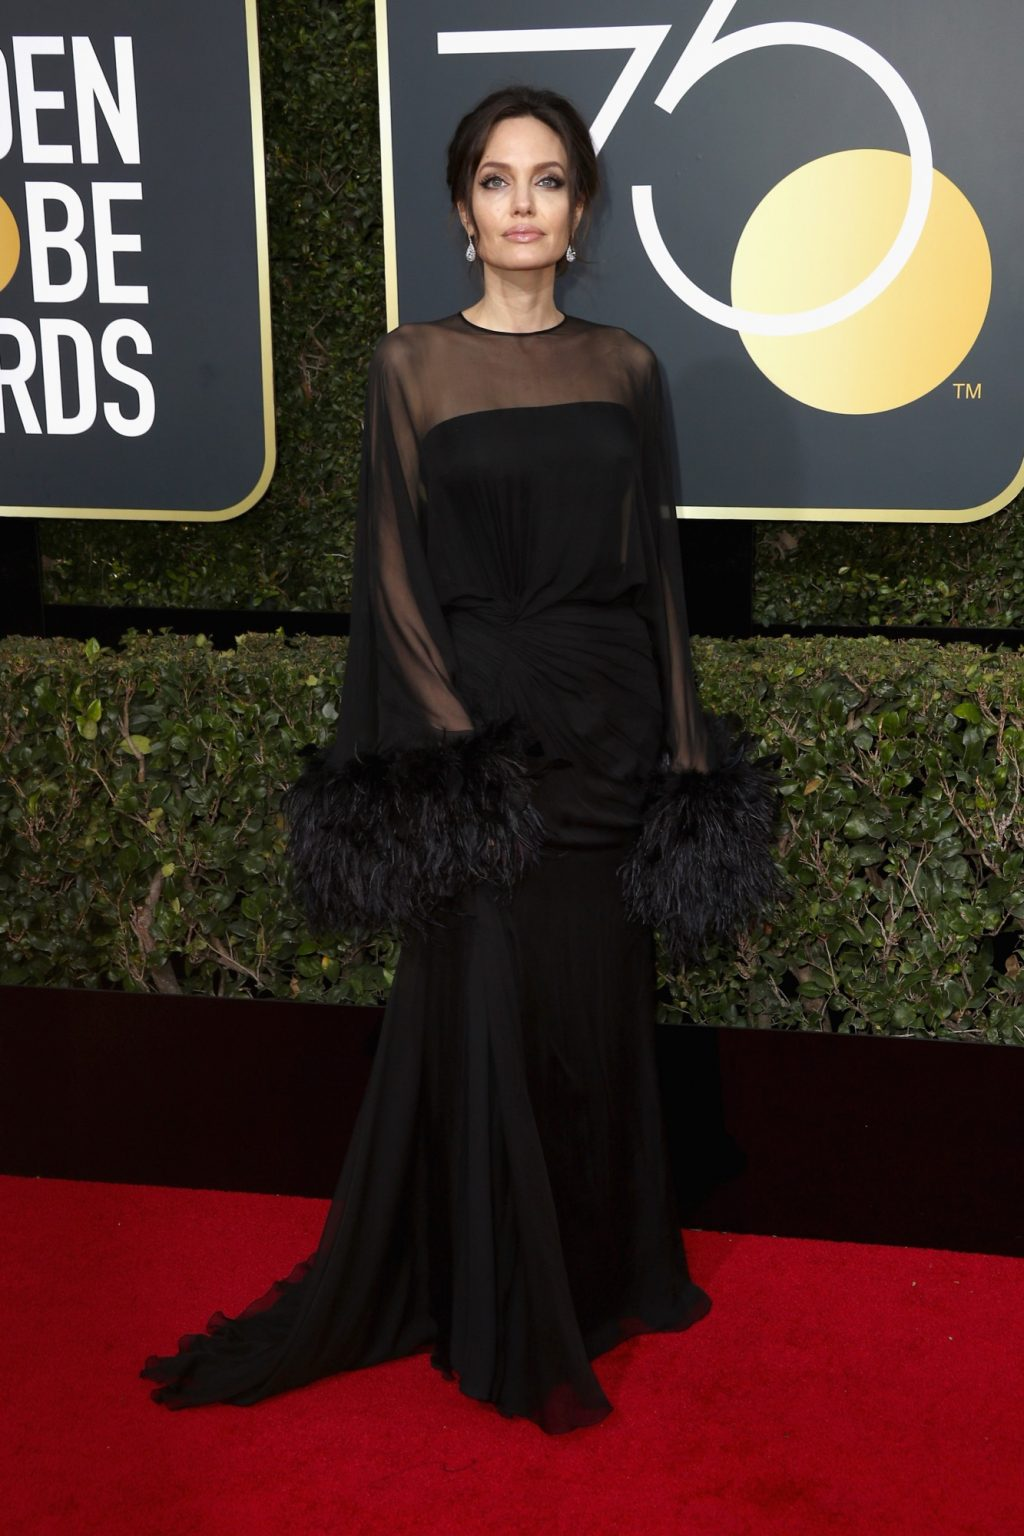 The Best All-Black Red Carpet Looks from the 2018 Golden Globes